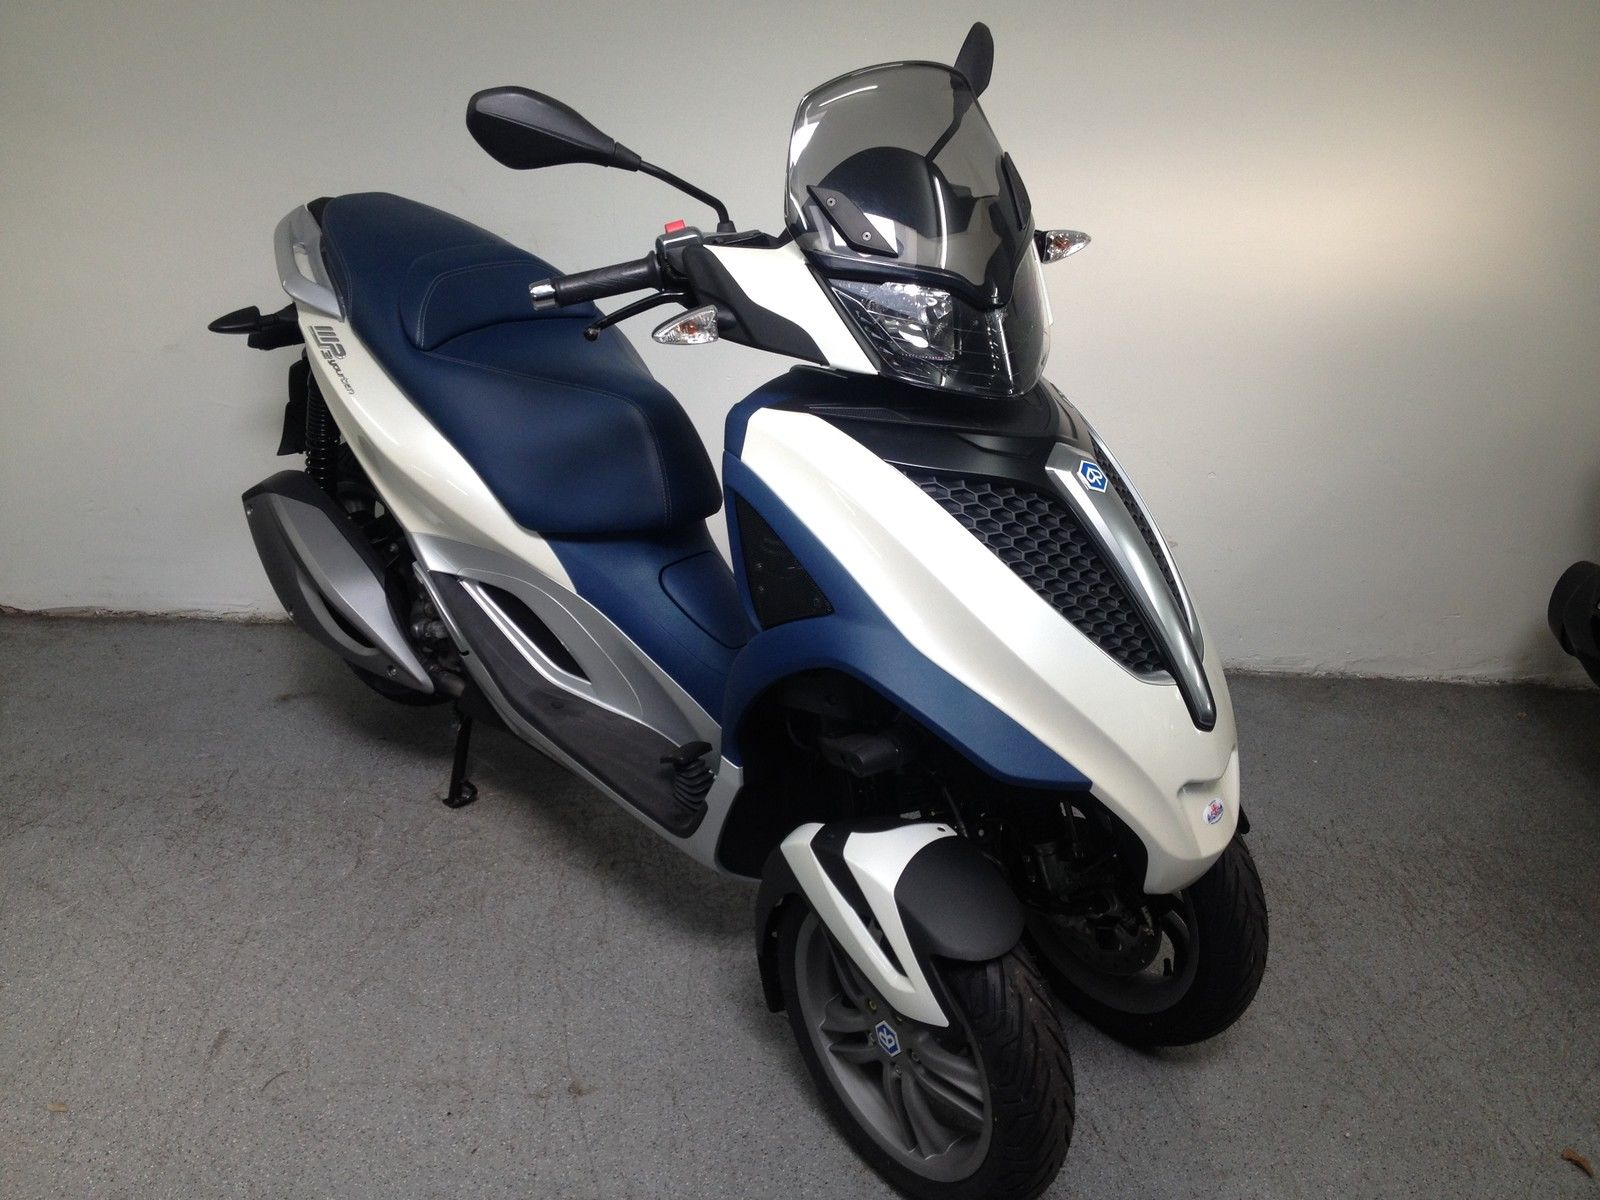 piaggio mp3 youban lt 300 trike bike not touring fuoco. Black Bedroom Furniture Sets. Home Design Ideas